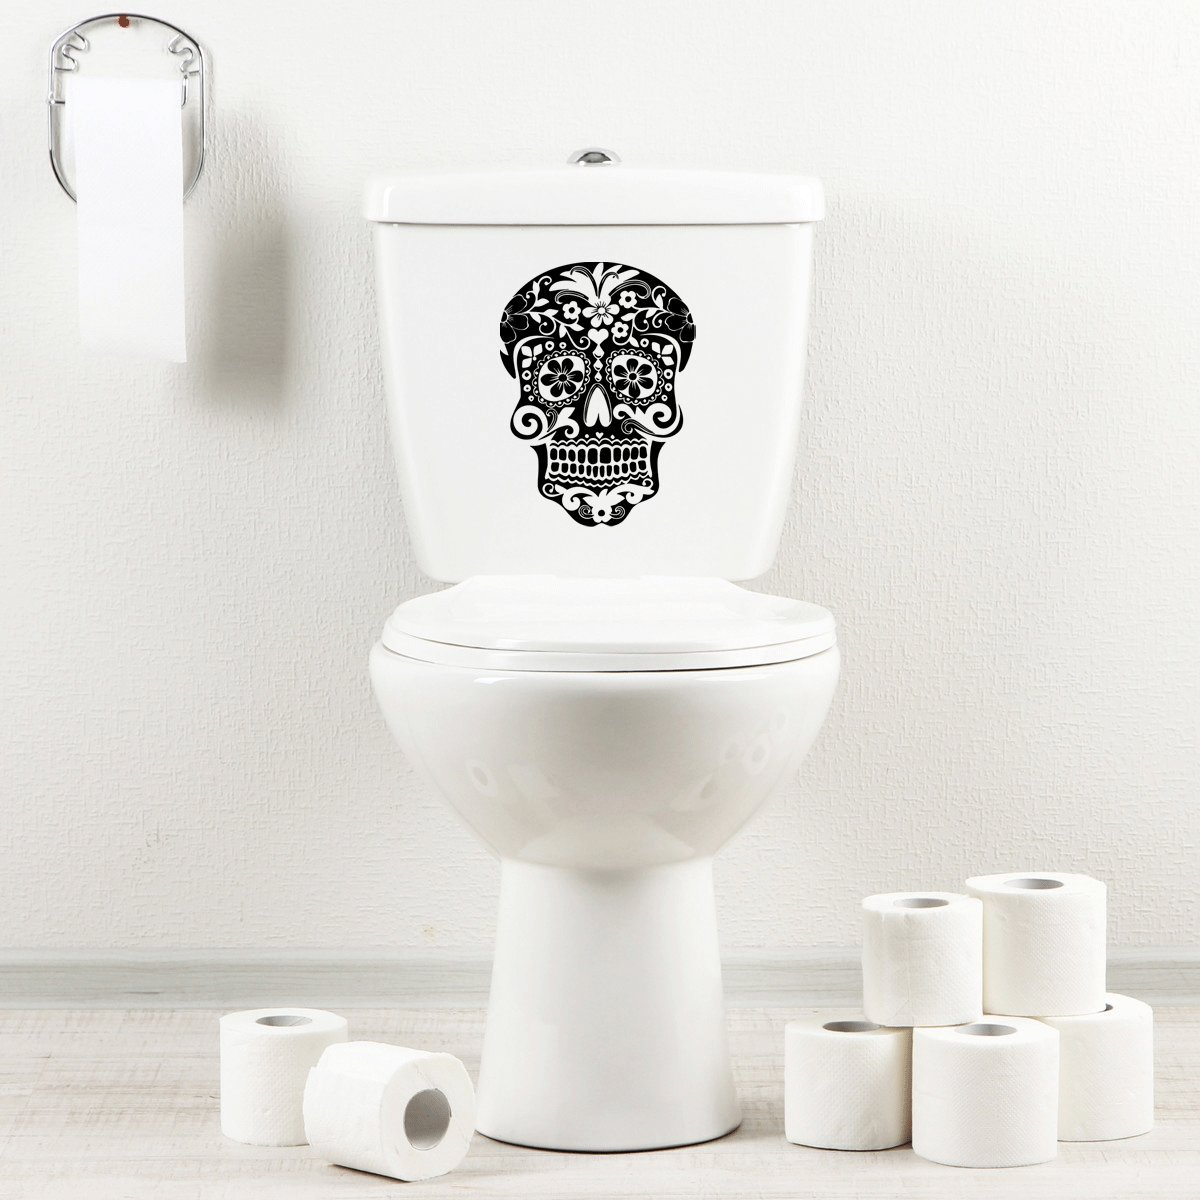 StickAny Bathroom Decal Series Mexican Skull Sticker for Toilet Bowl, Bath, Seat Black